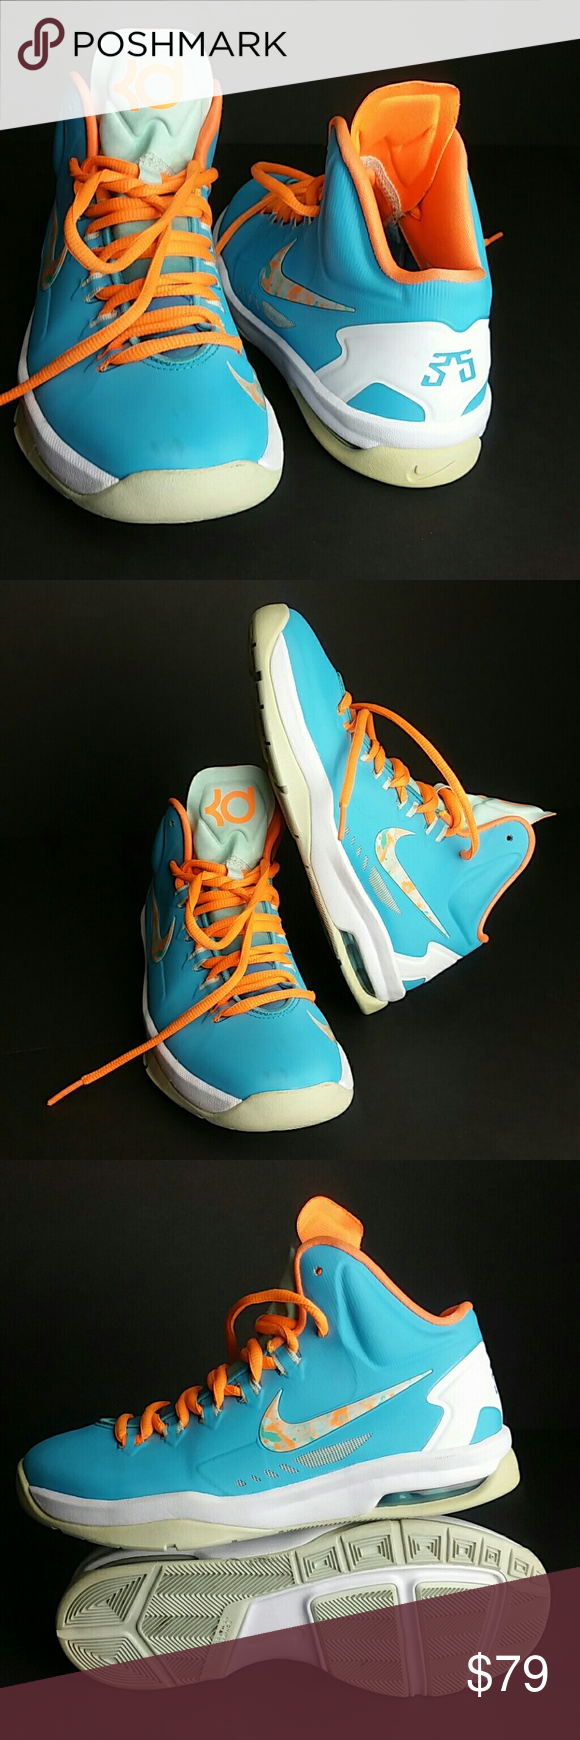 Nike kd 5 v easter youth shoes | Youth shoes, Shoes, Nike